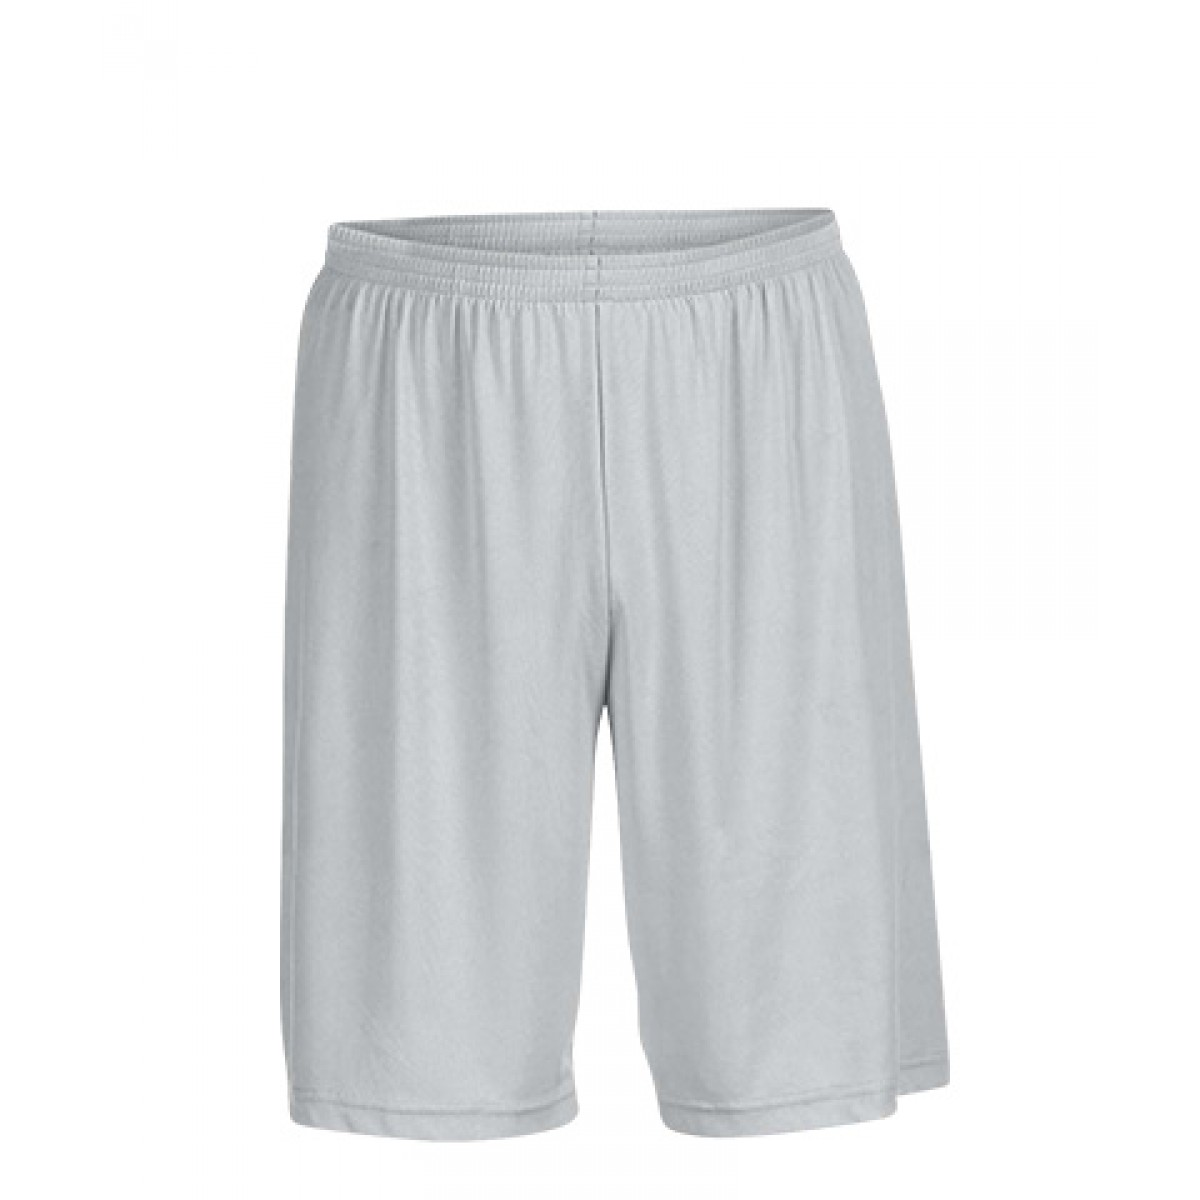 Men's Performance Shorts-Silver-XL